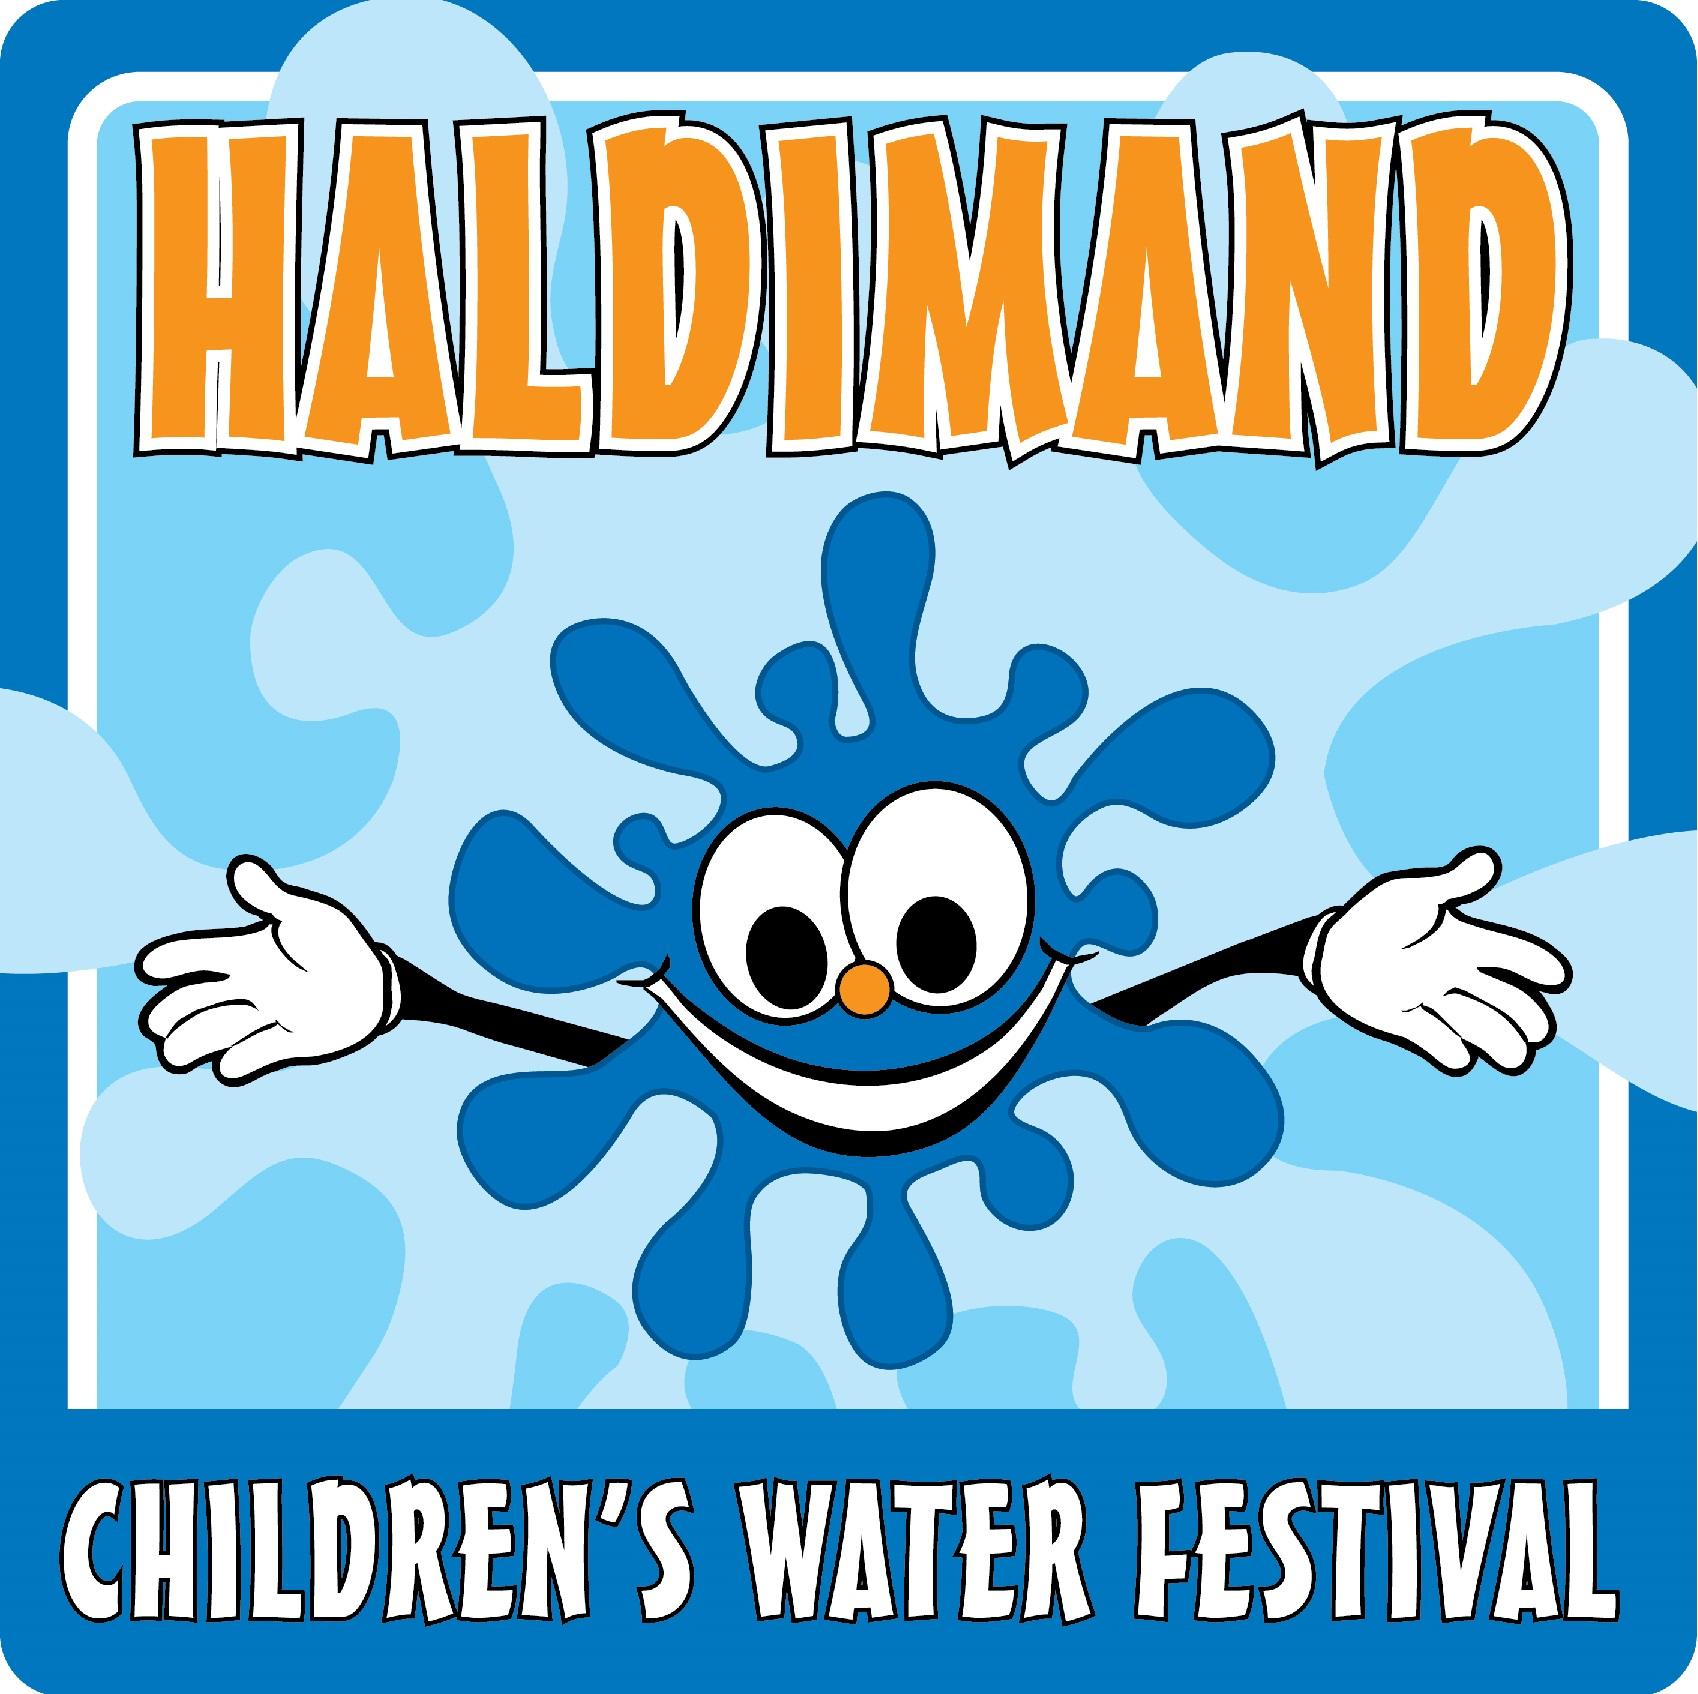 Haldimand Children's Water Festival Logo